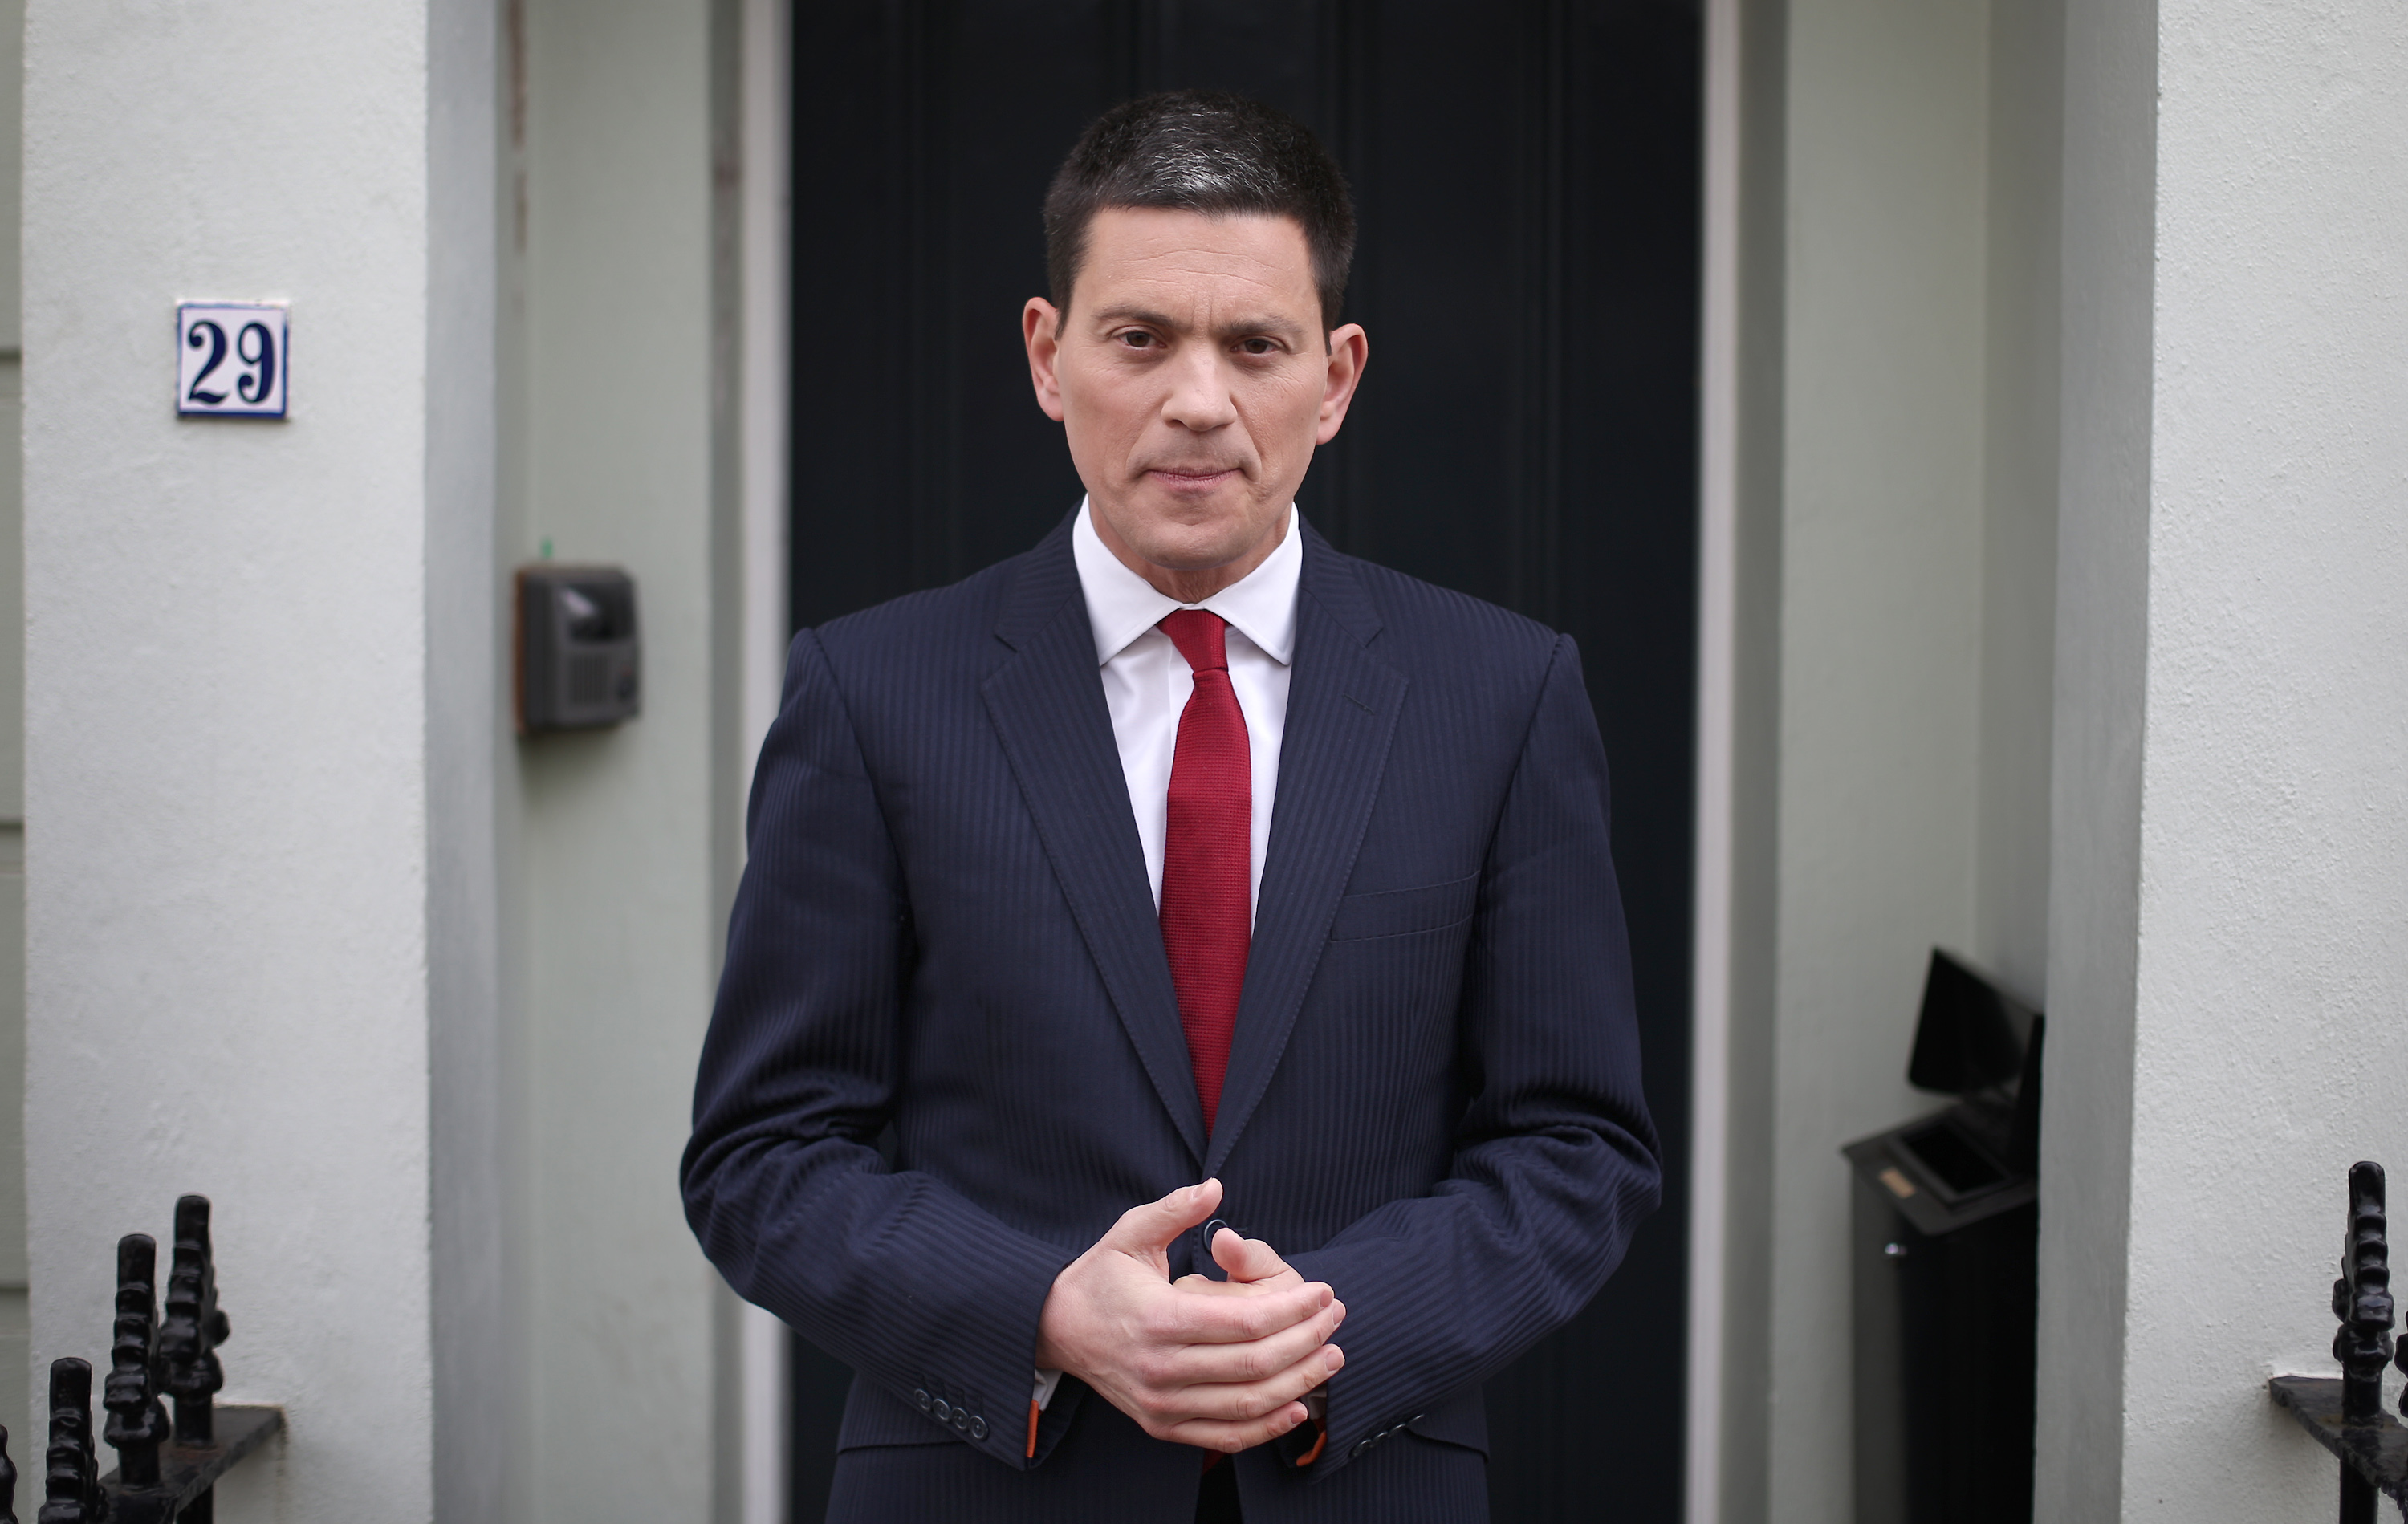 David Miliband warns world 'failing' as UN launches £4bn Syria appeal for 'biggest test'